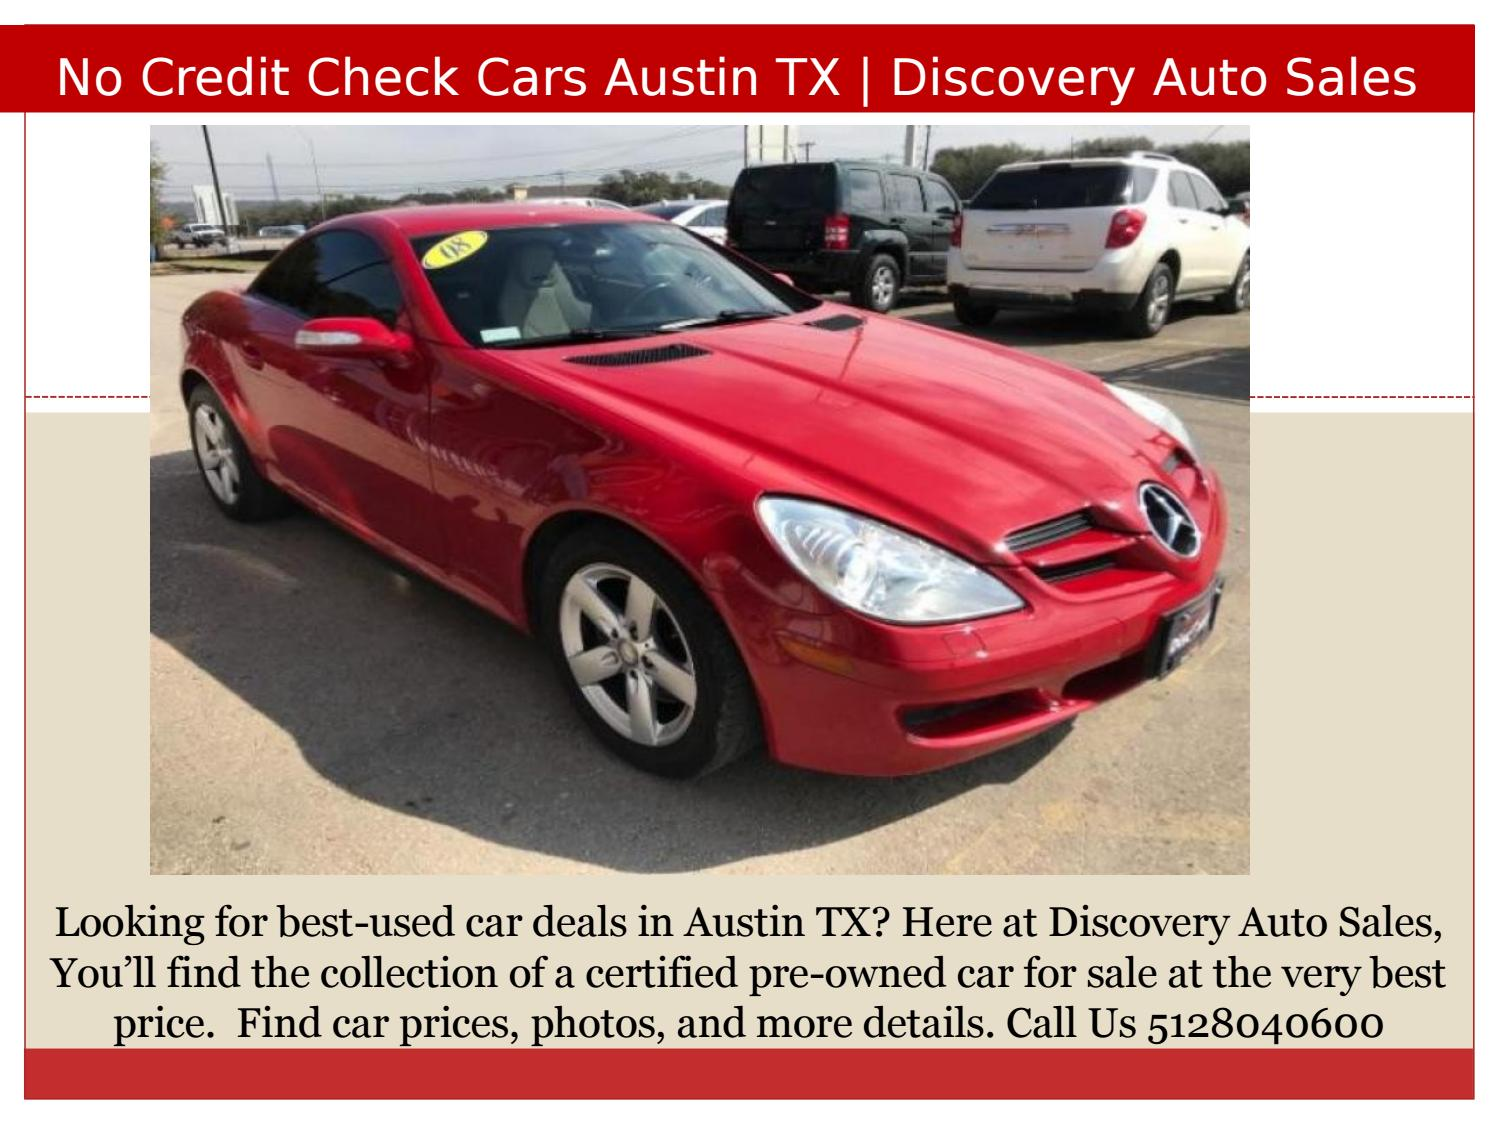 No Credit Check Car Lots >> No Credit Check Cars Austin Tx By Discovery Auto Sales Issuu